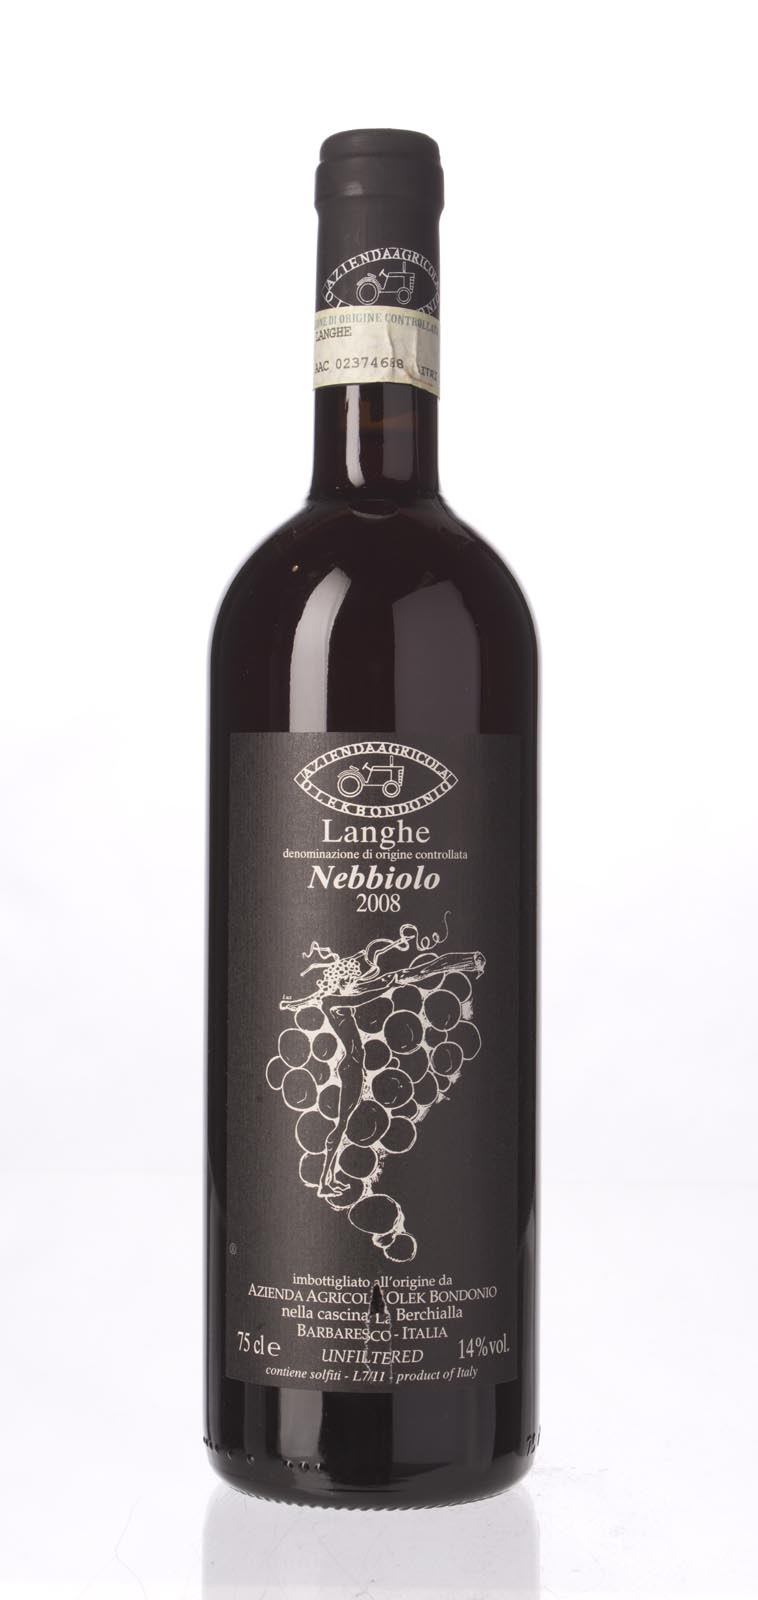 Olek Bondonio Nebbiolo Langhe 2008, 750ml () from The BPW - Merchants of rare and fine wines.